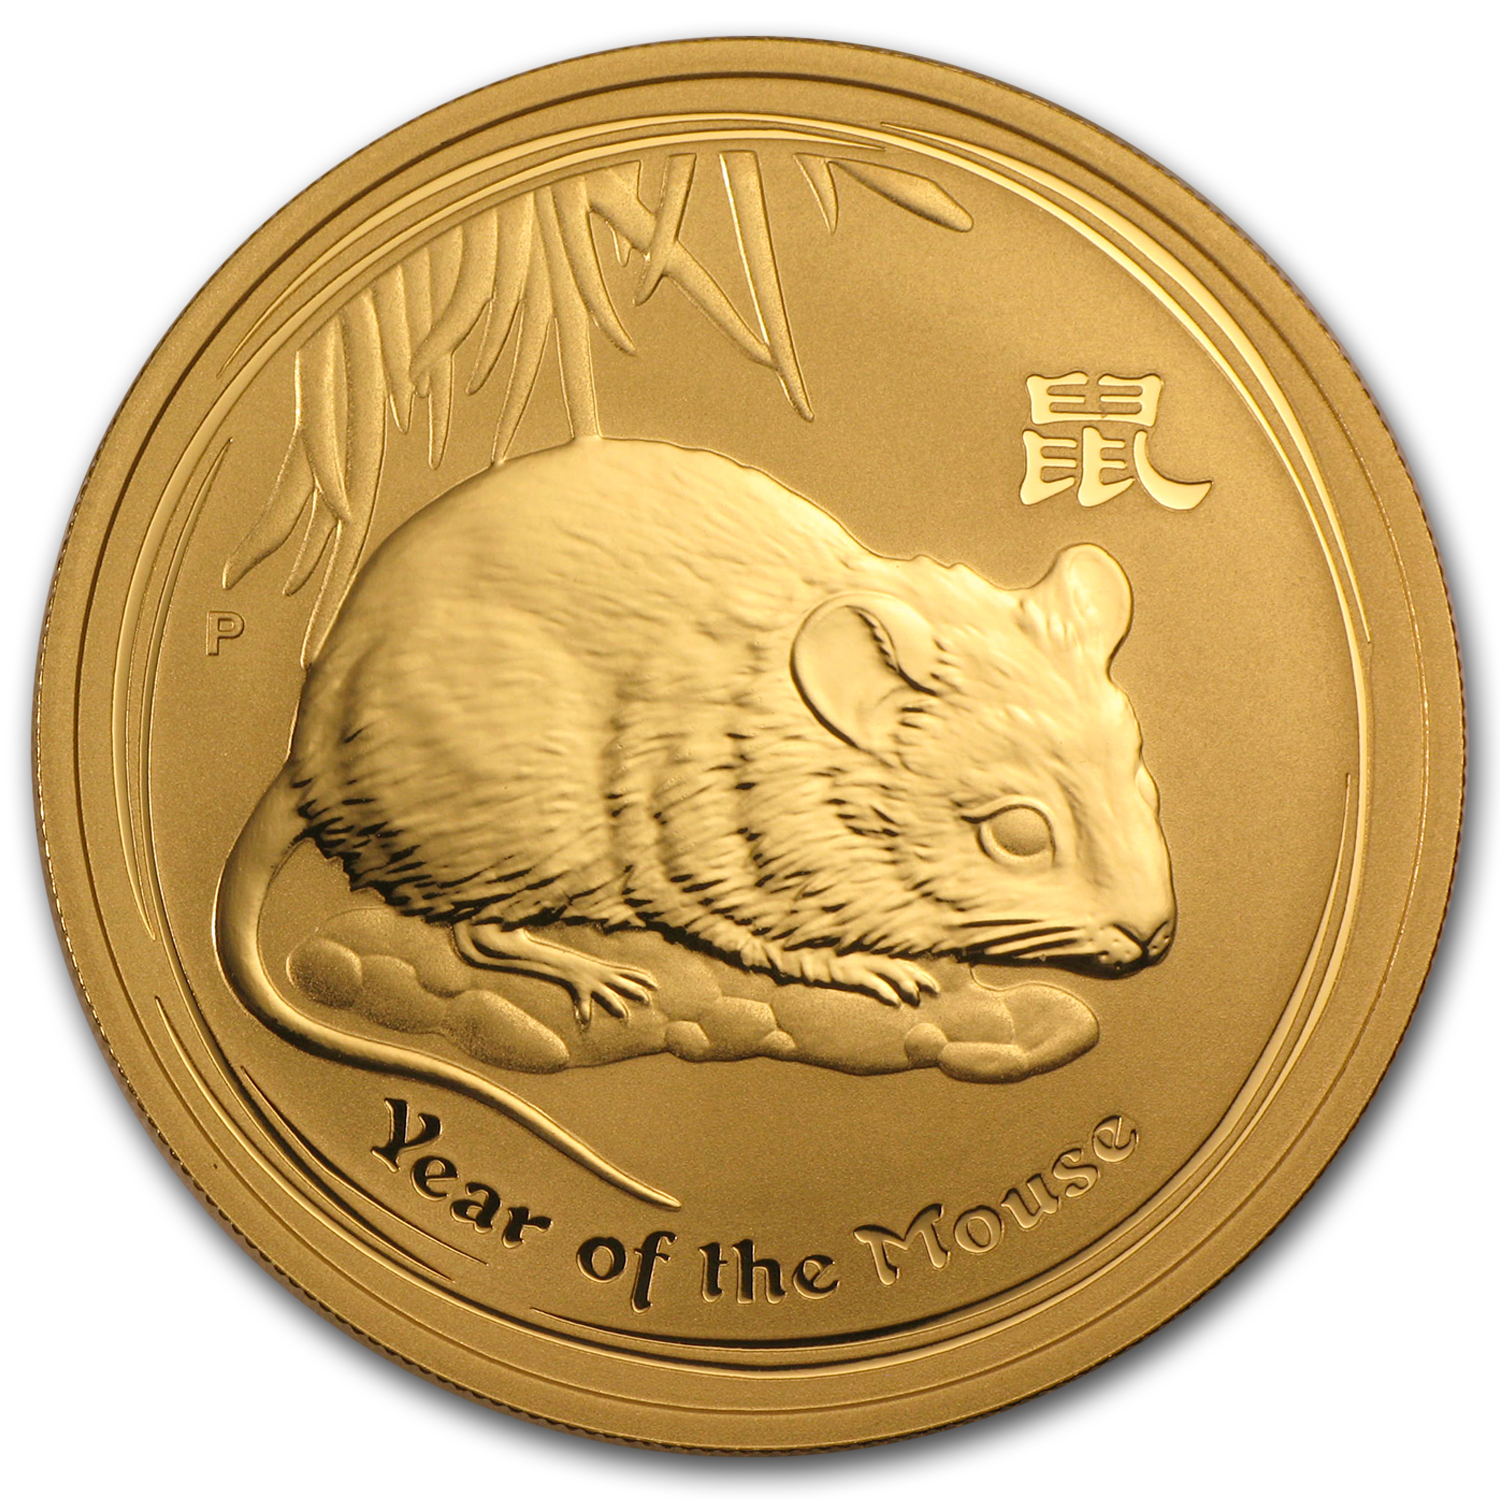 2008 1 oz Gold Lunar Year of the Mouse BU (Series II)